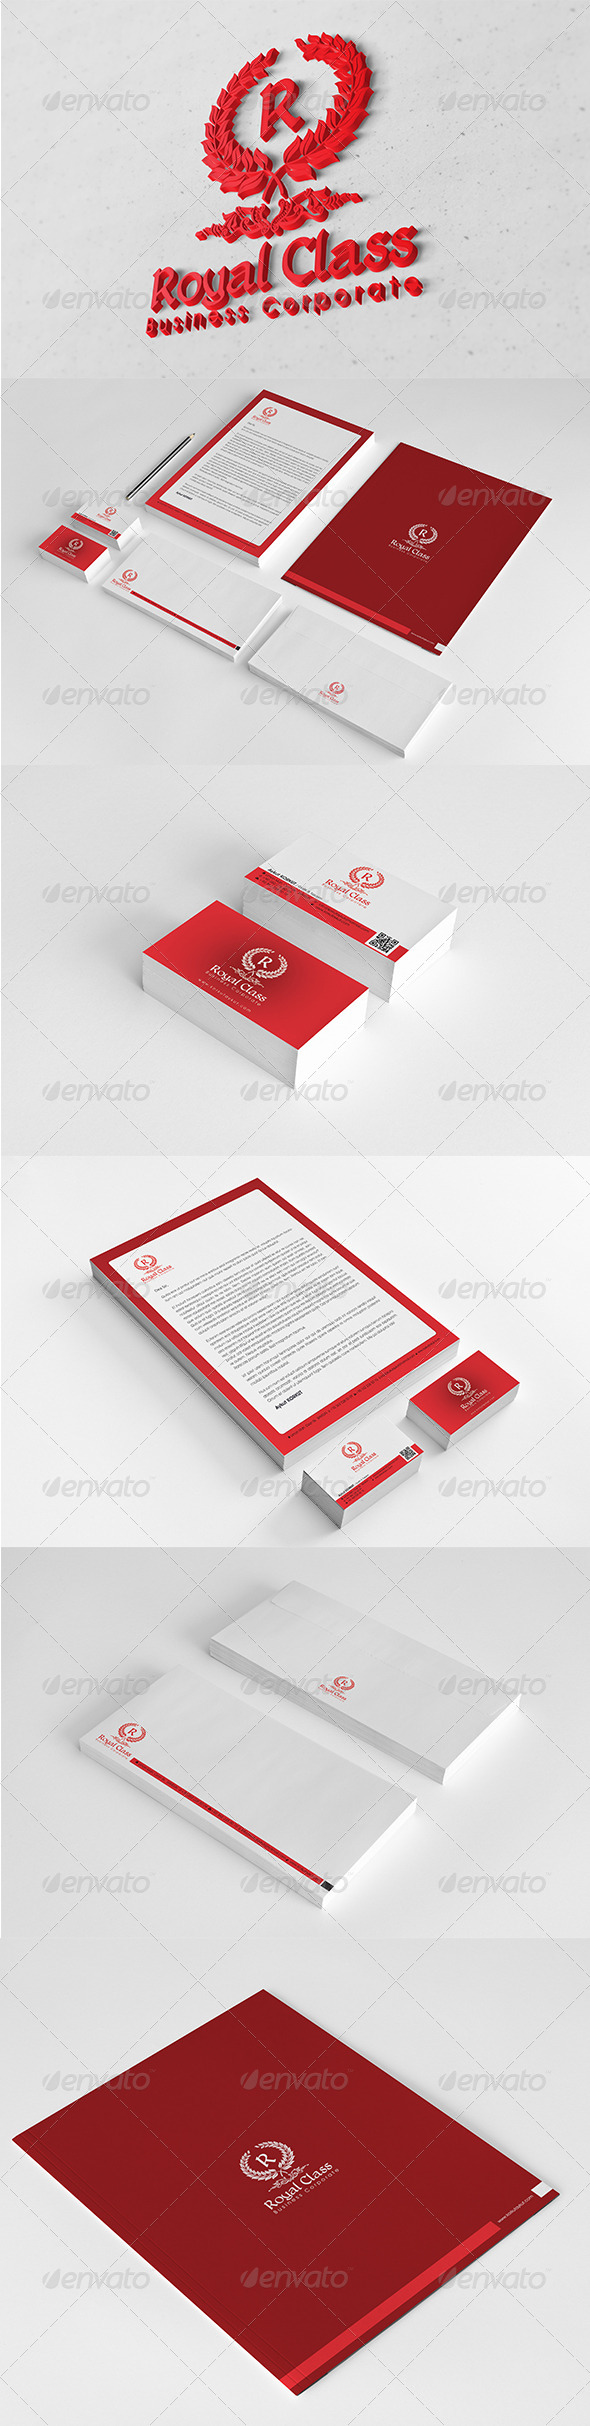 Royal Class Corporate Identity Package  - Stationery Print Templates